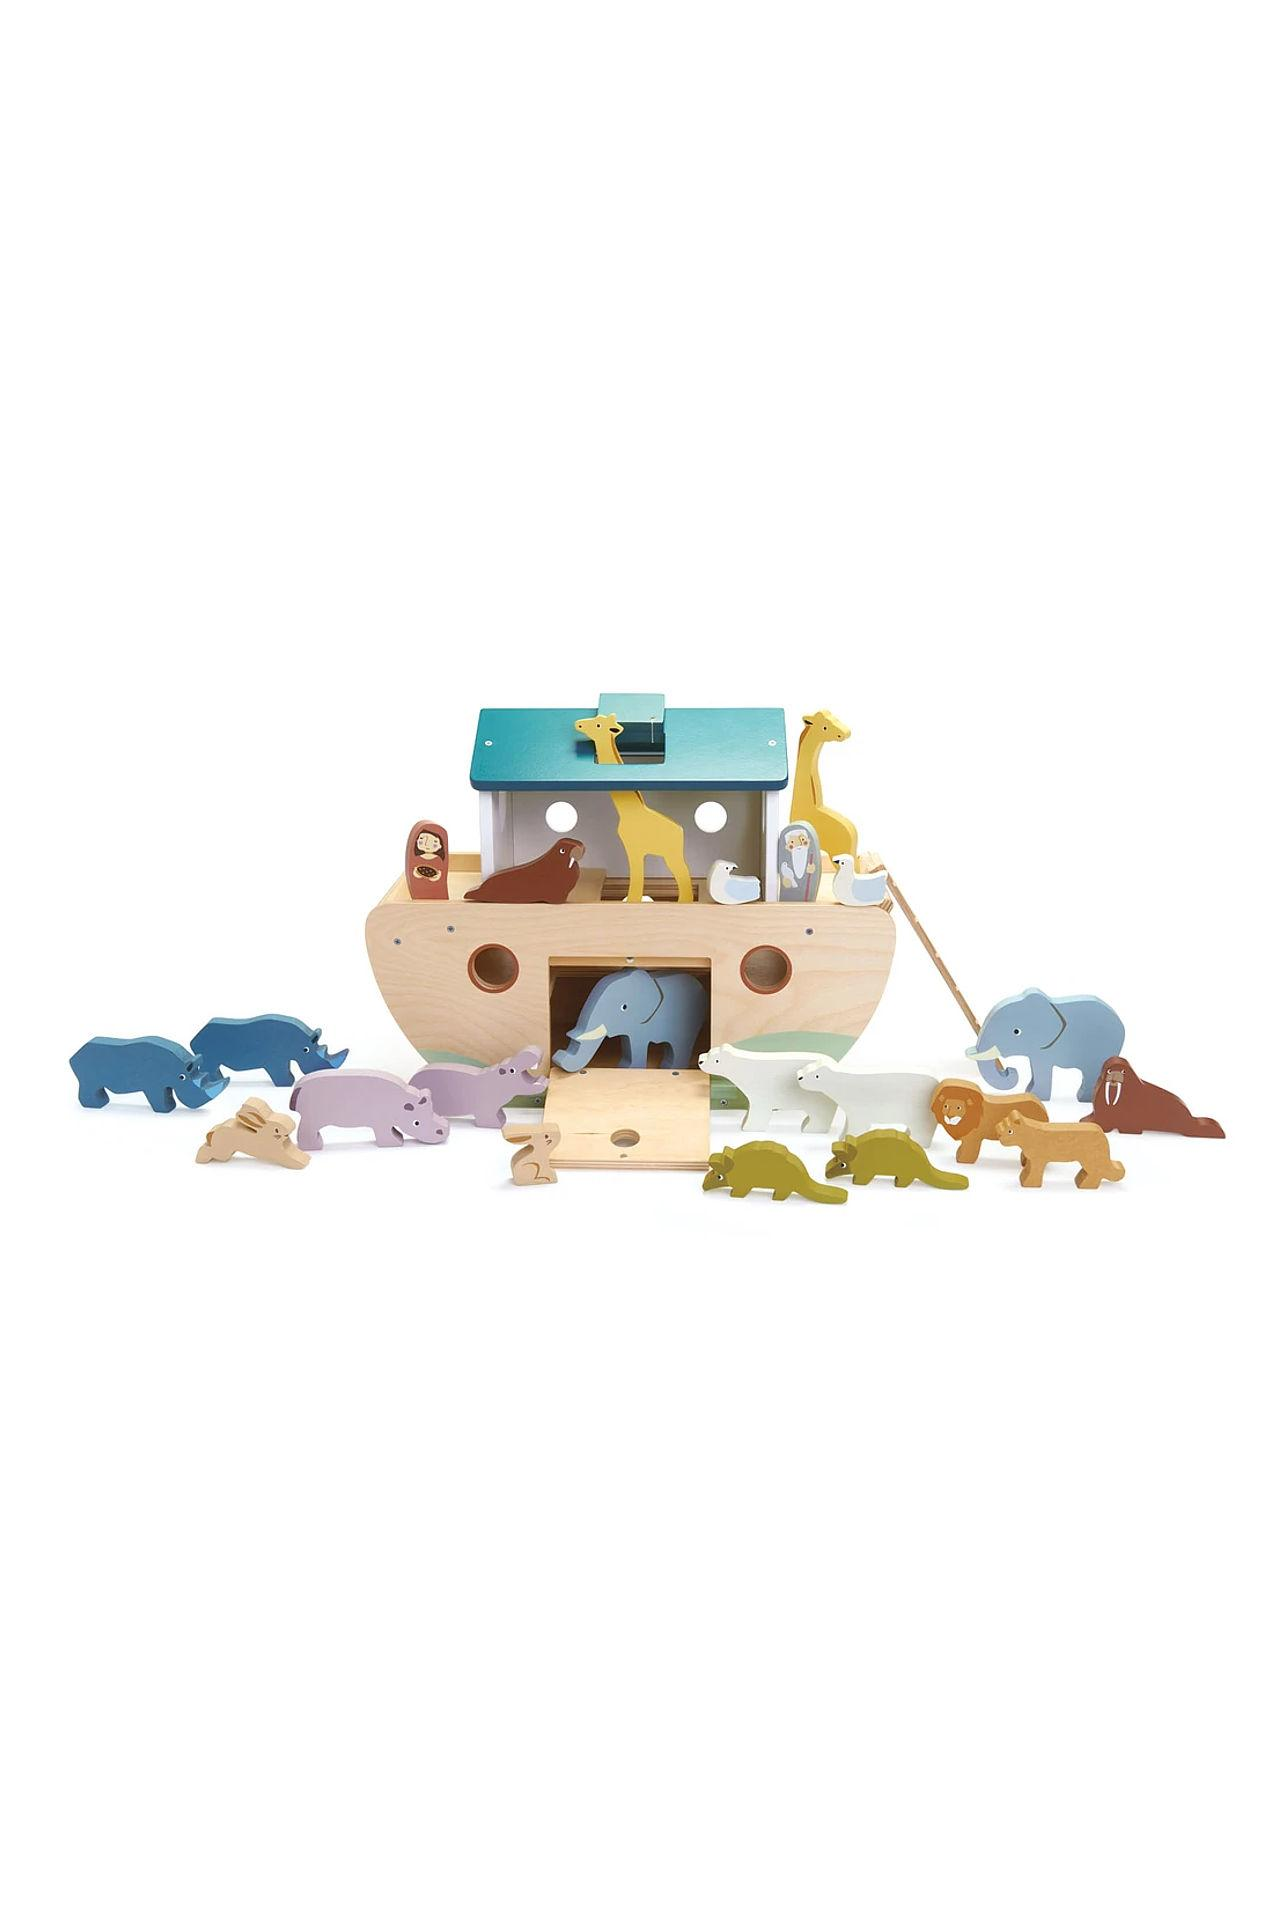 New Noah's Ark with 10 Pairs of Wooden Animals #4